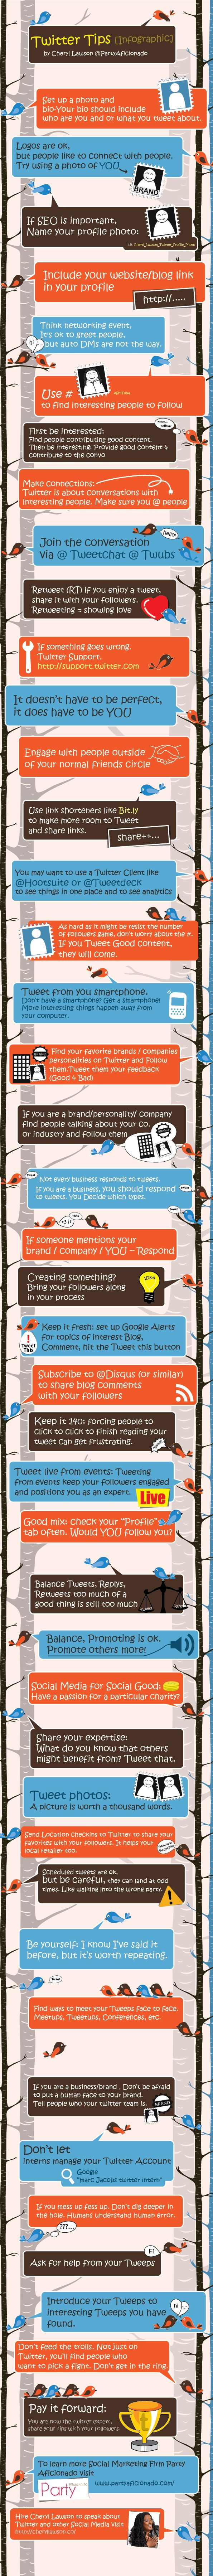 How to use Twitter #infographic